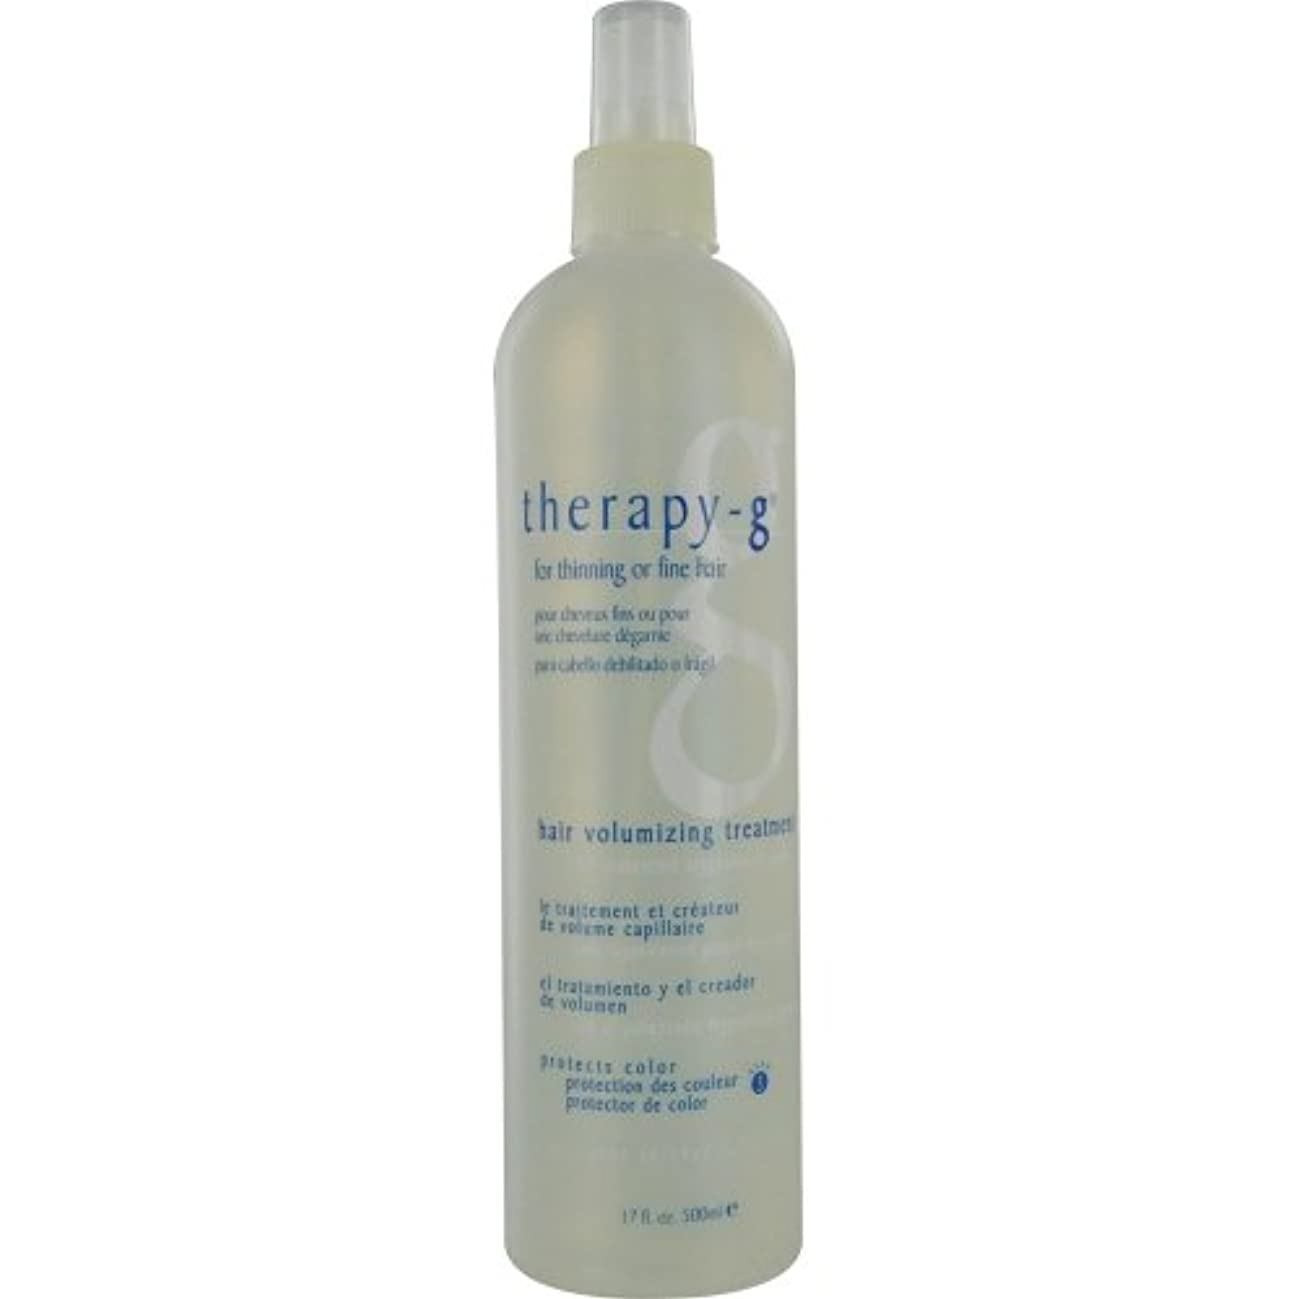 マート聖人不調和セラピーg Hair Volumizing Treatment (For Thinning or Fine Hair) 500ml [海外直送品]